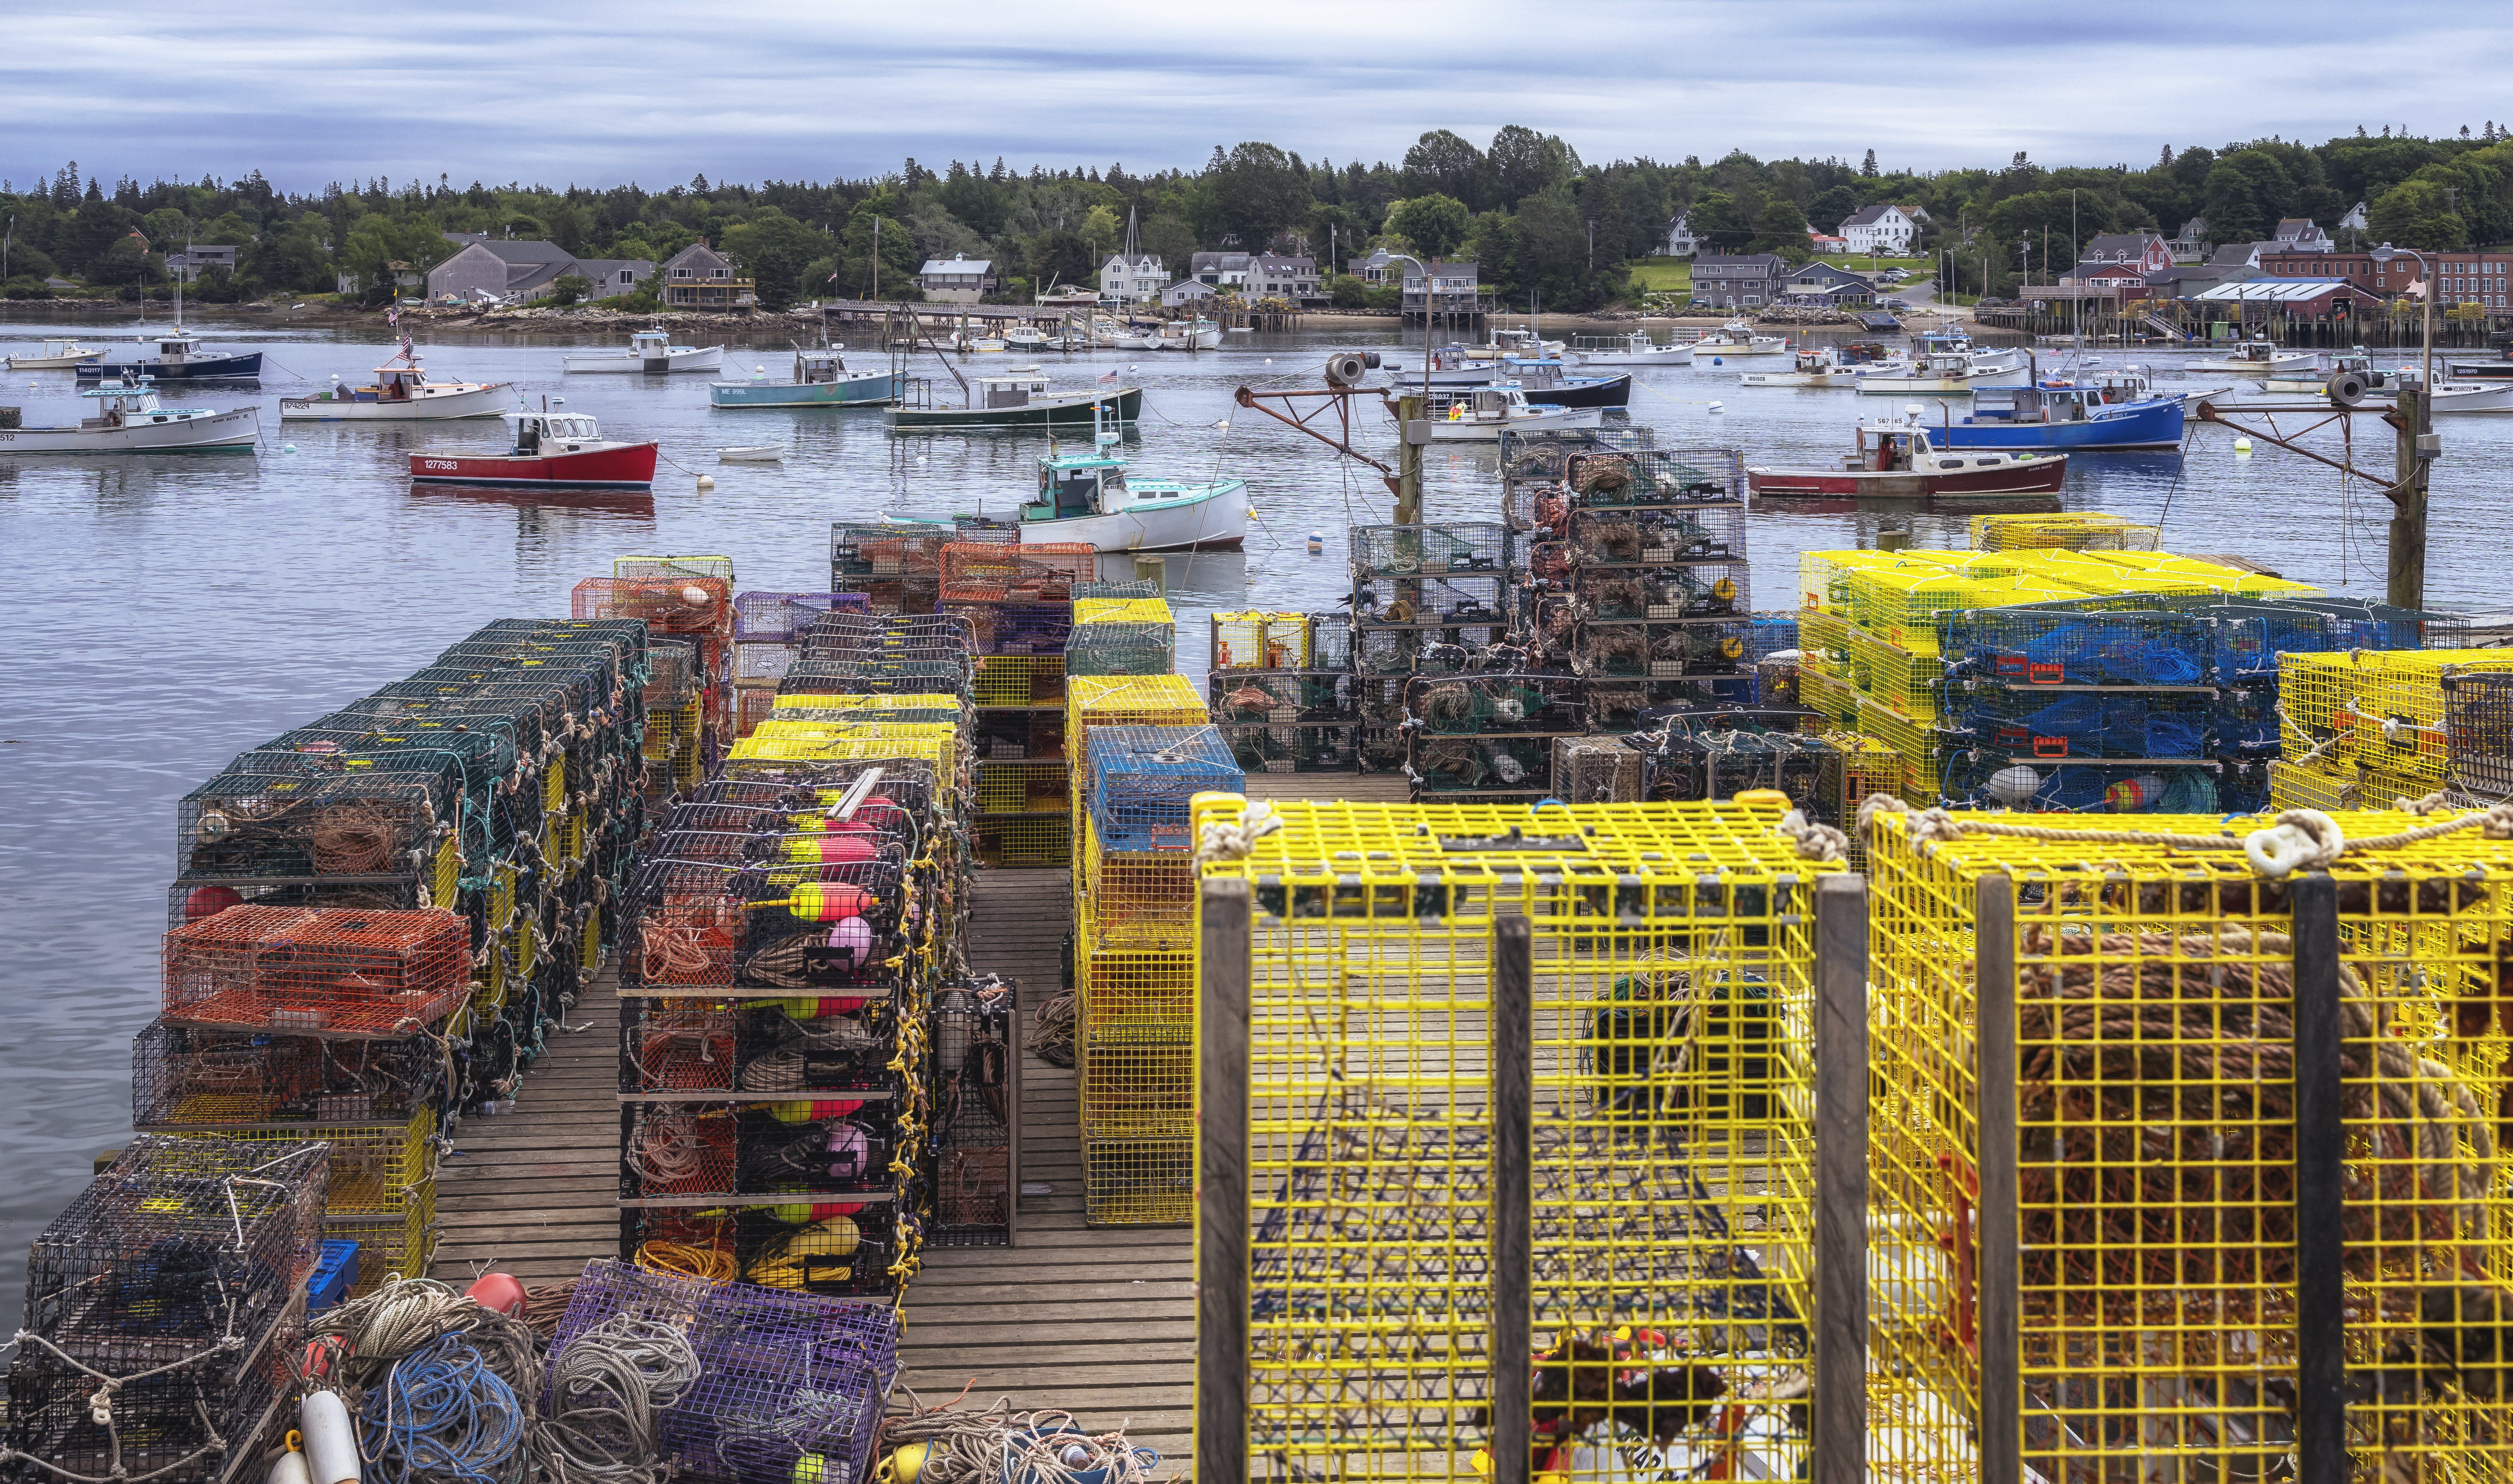 A New England Fishing Village